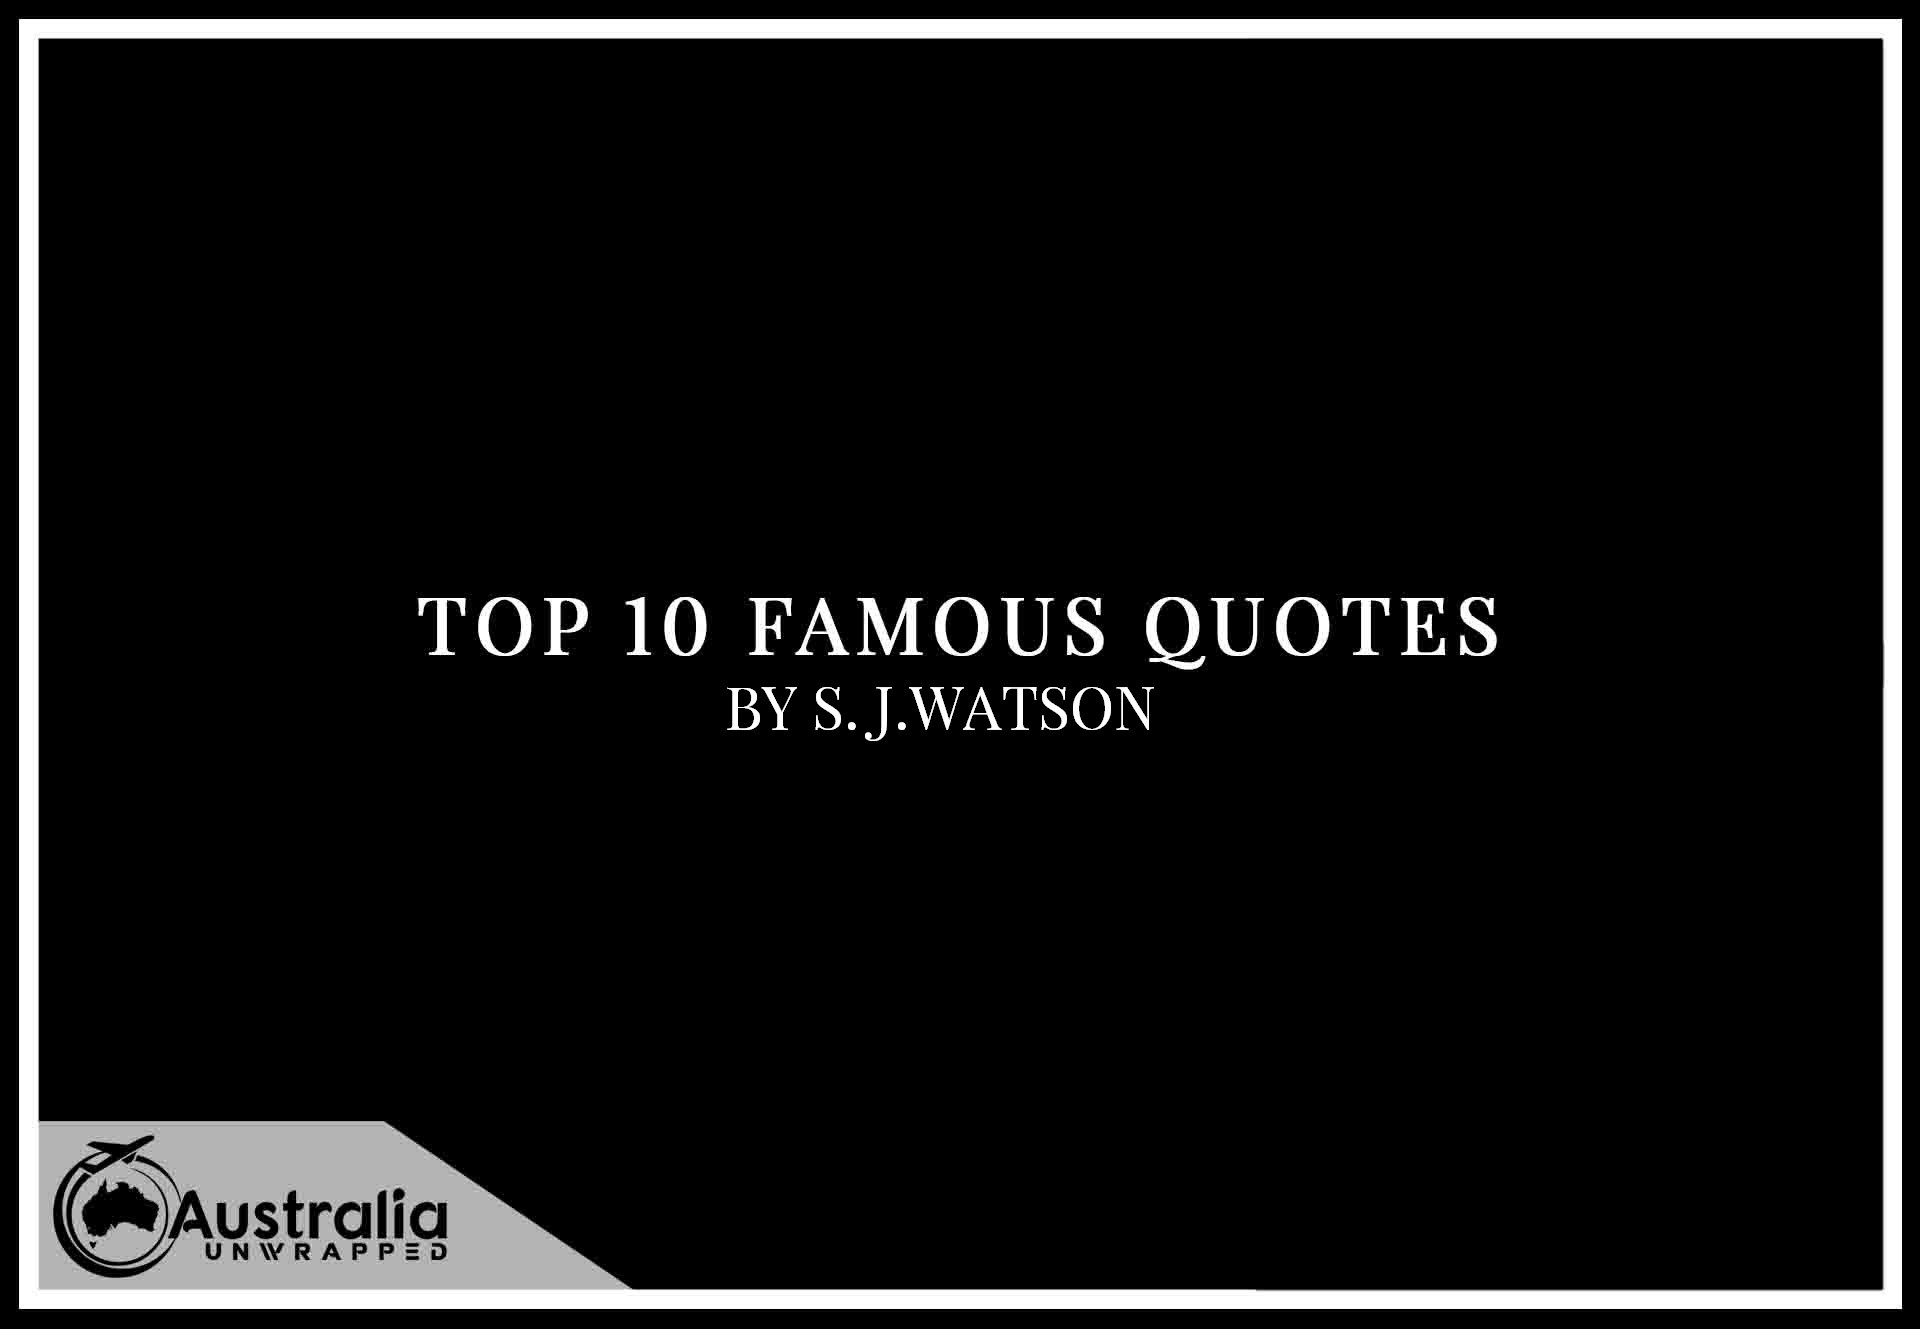 Top 10 Famous Quotes by Author S.J. Watson